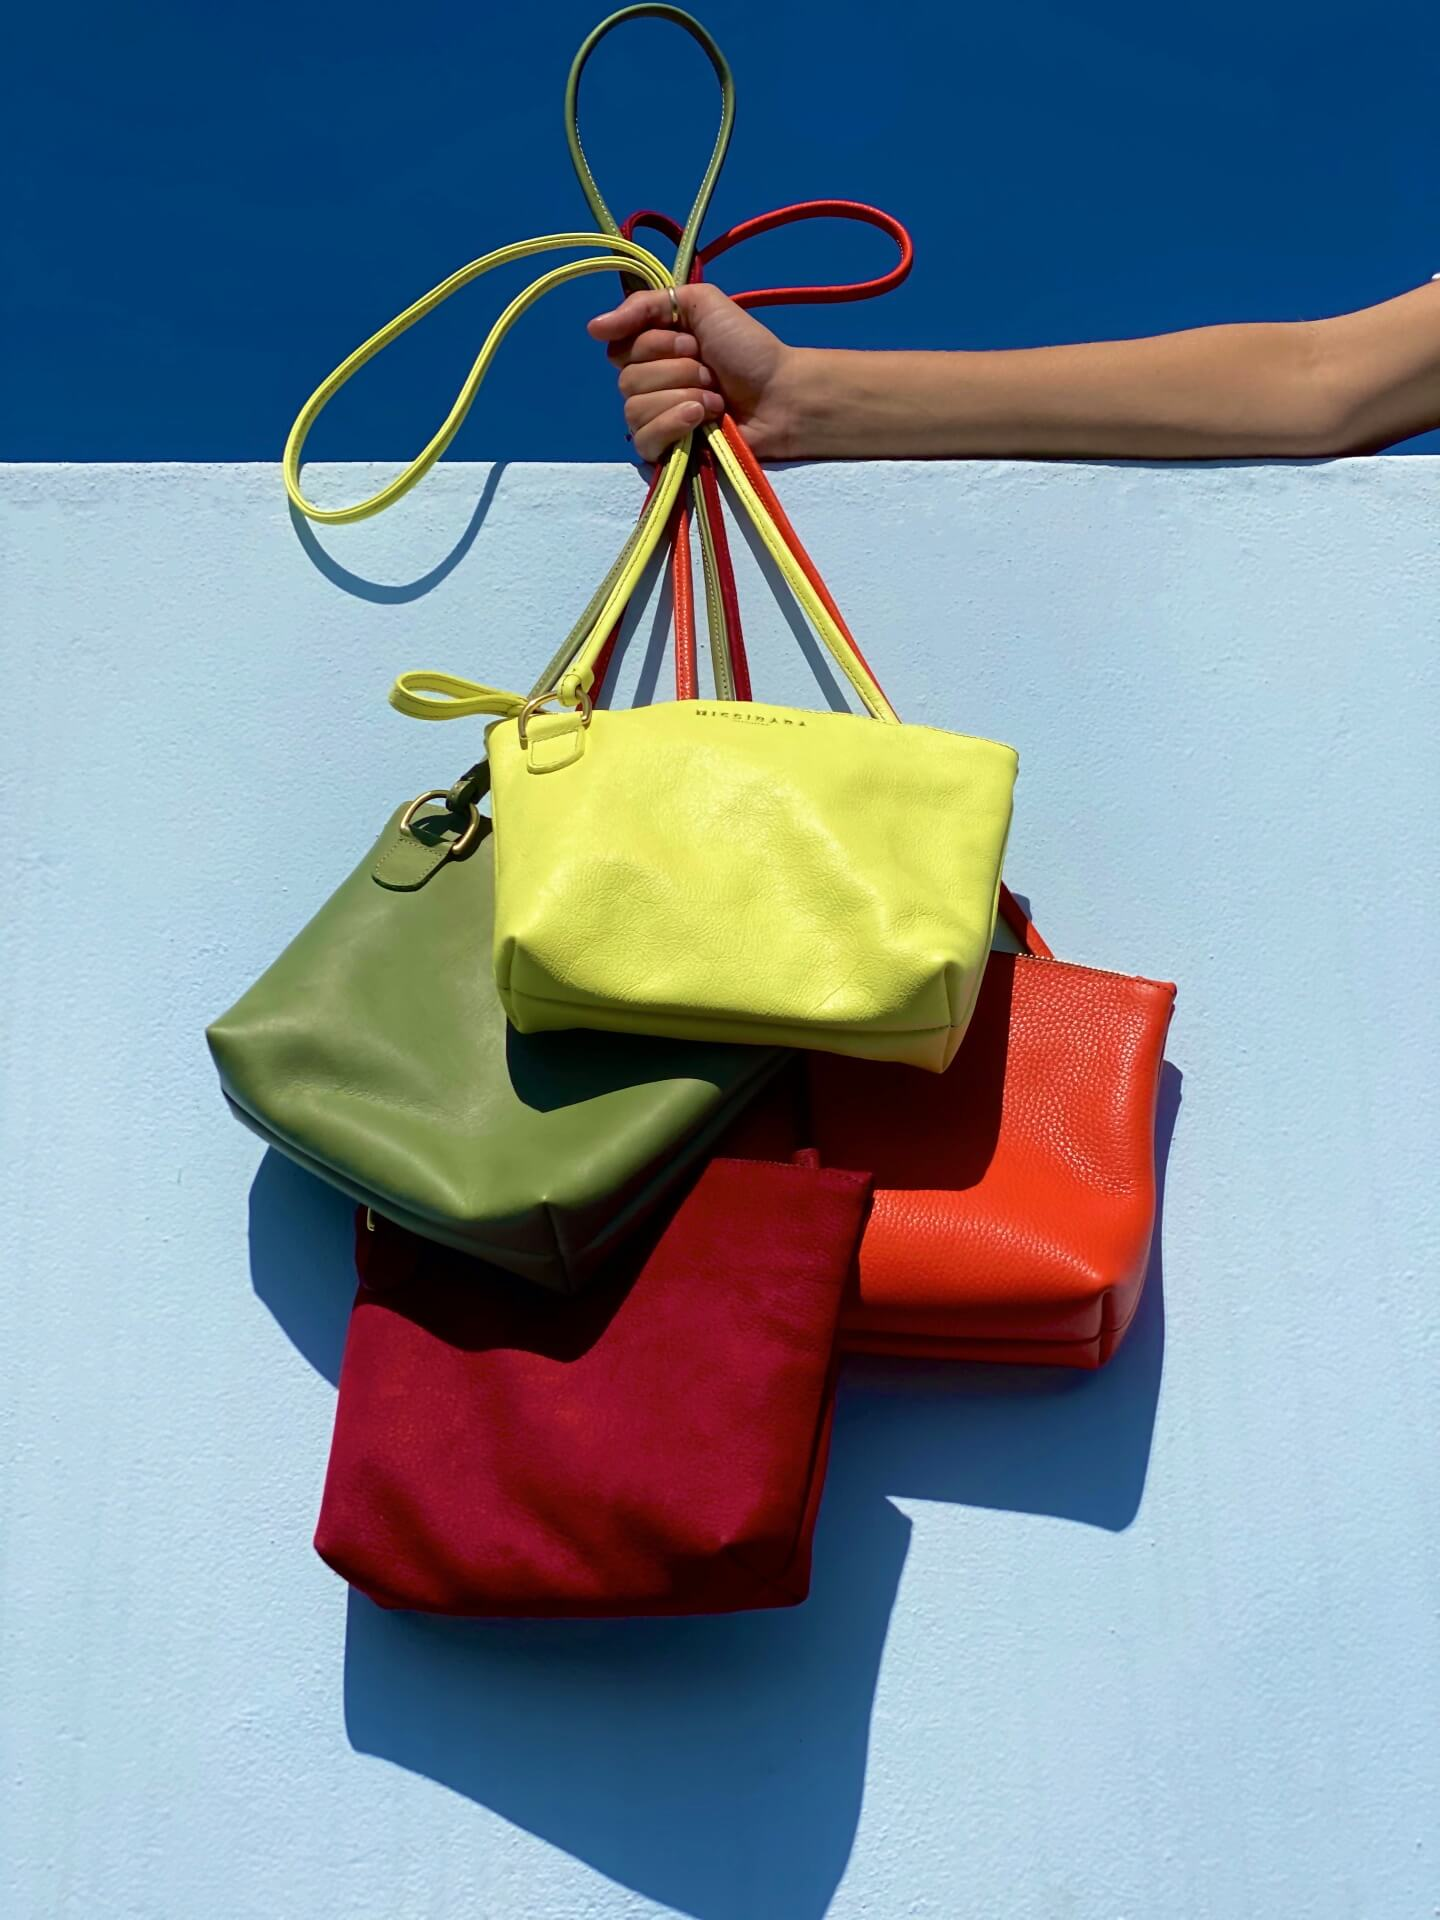 Missibaba leather bag (voucher with value of R4 000)